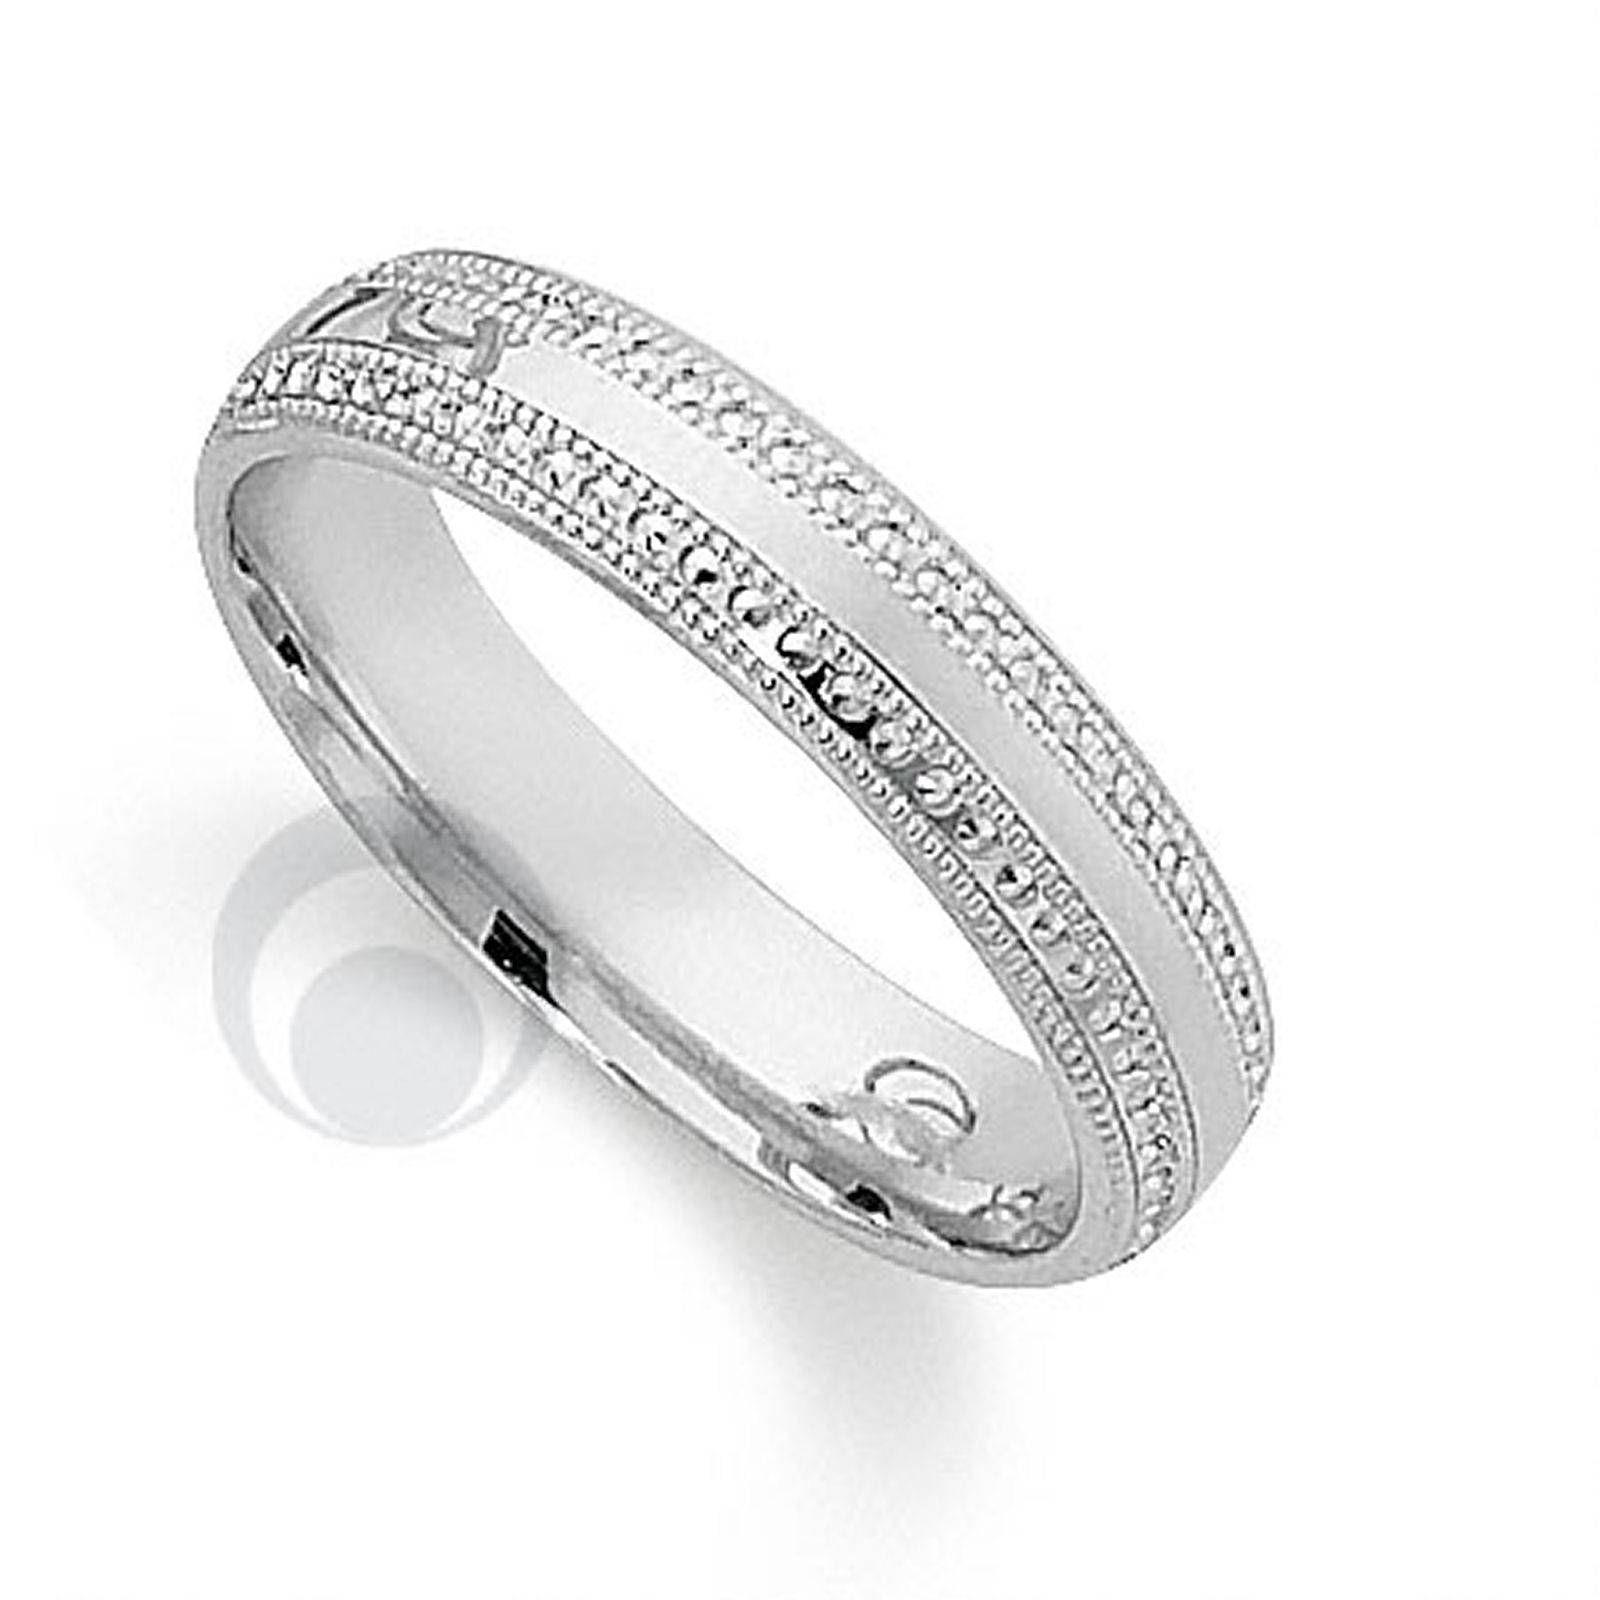 Pretty Patterened Platinum Wedding Ring From The Platinum Ring Intended For Most Current Platnium Wedding Bands (View 12 of 15)